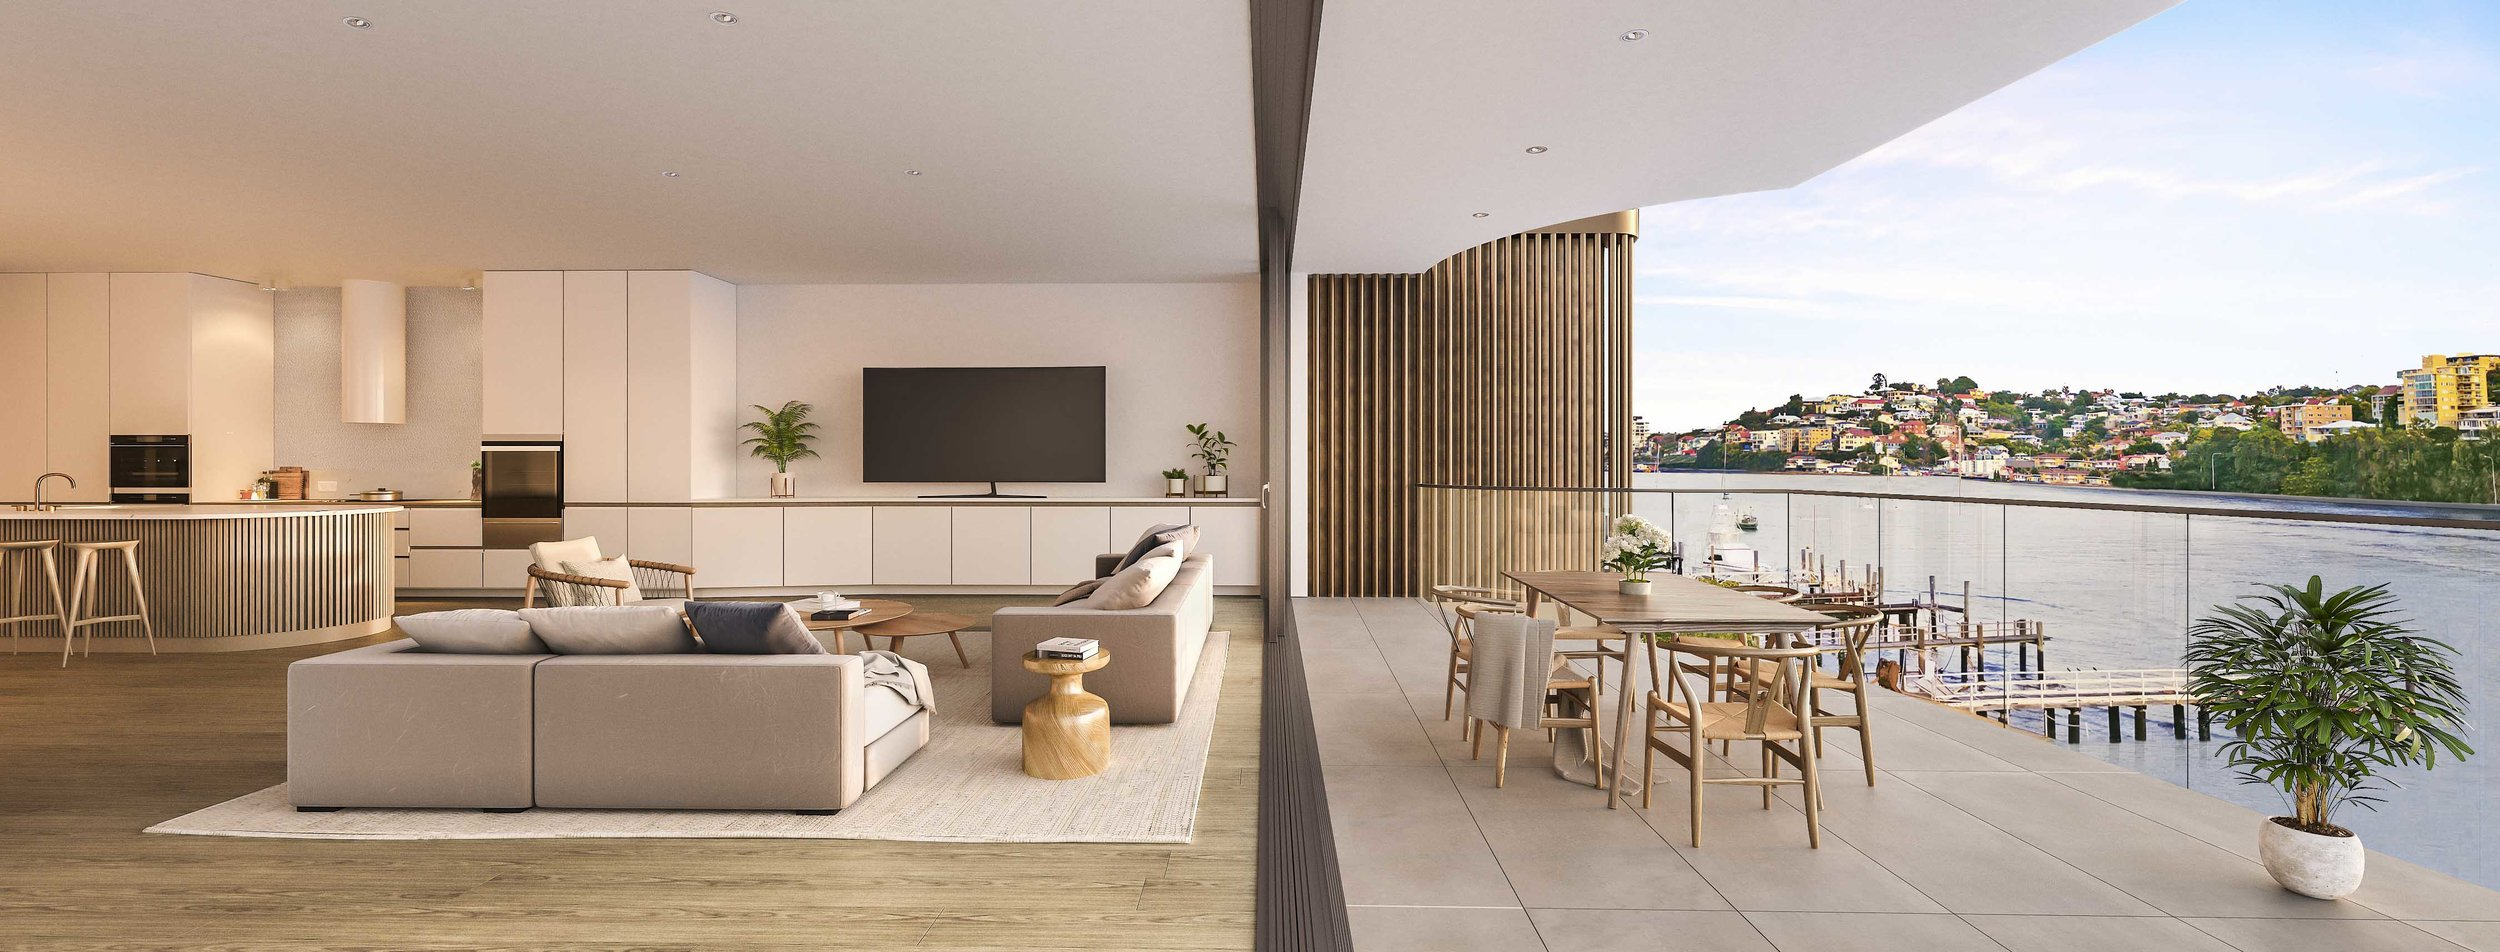 ONE-Bulimba-Riverfront-cross-section-of-Penthouse-lo-res.jpg